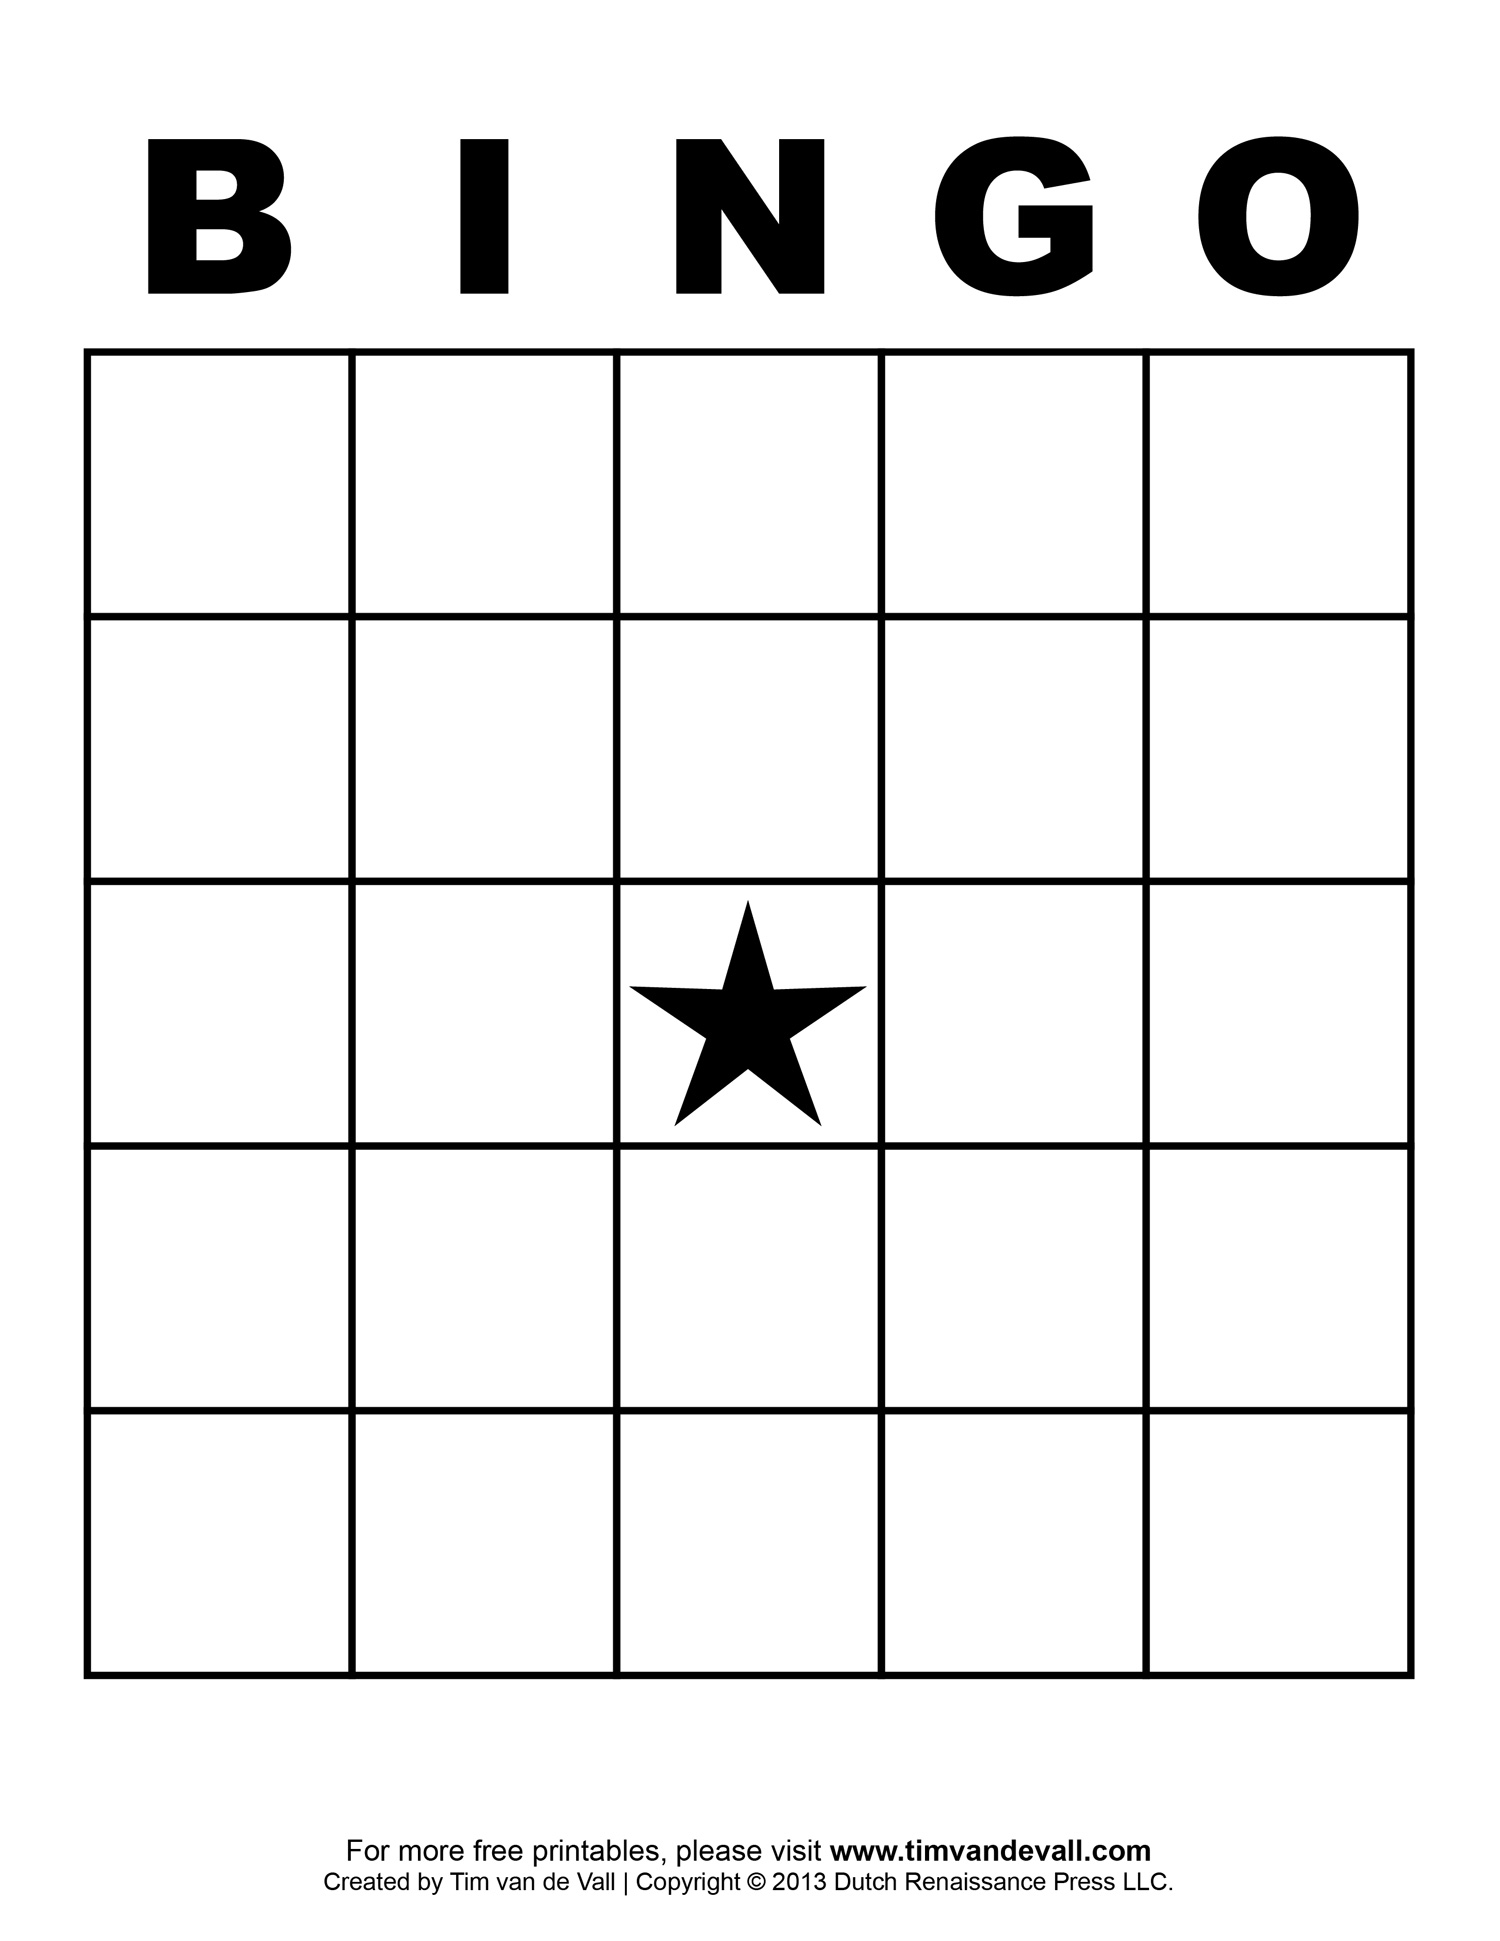 photograph relating to Bingo Chips Printable known as Totally free printable bingo playing cards pdfs with figures and tokens